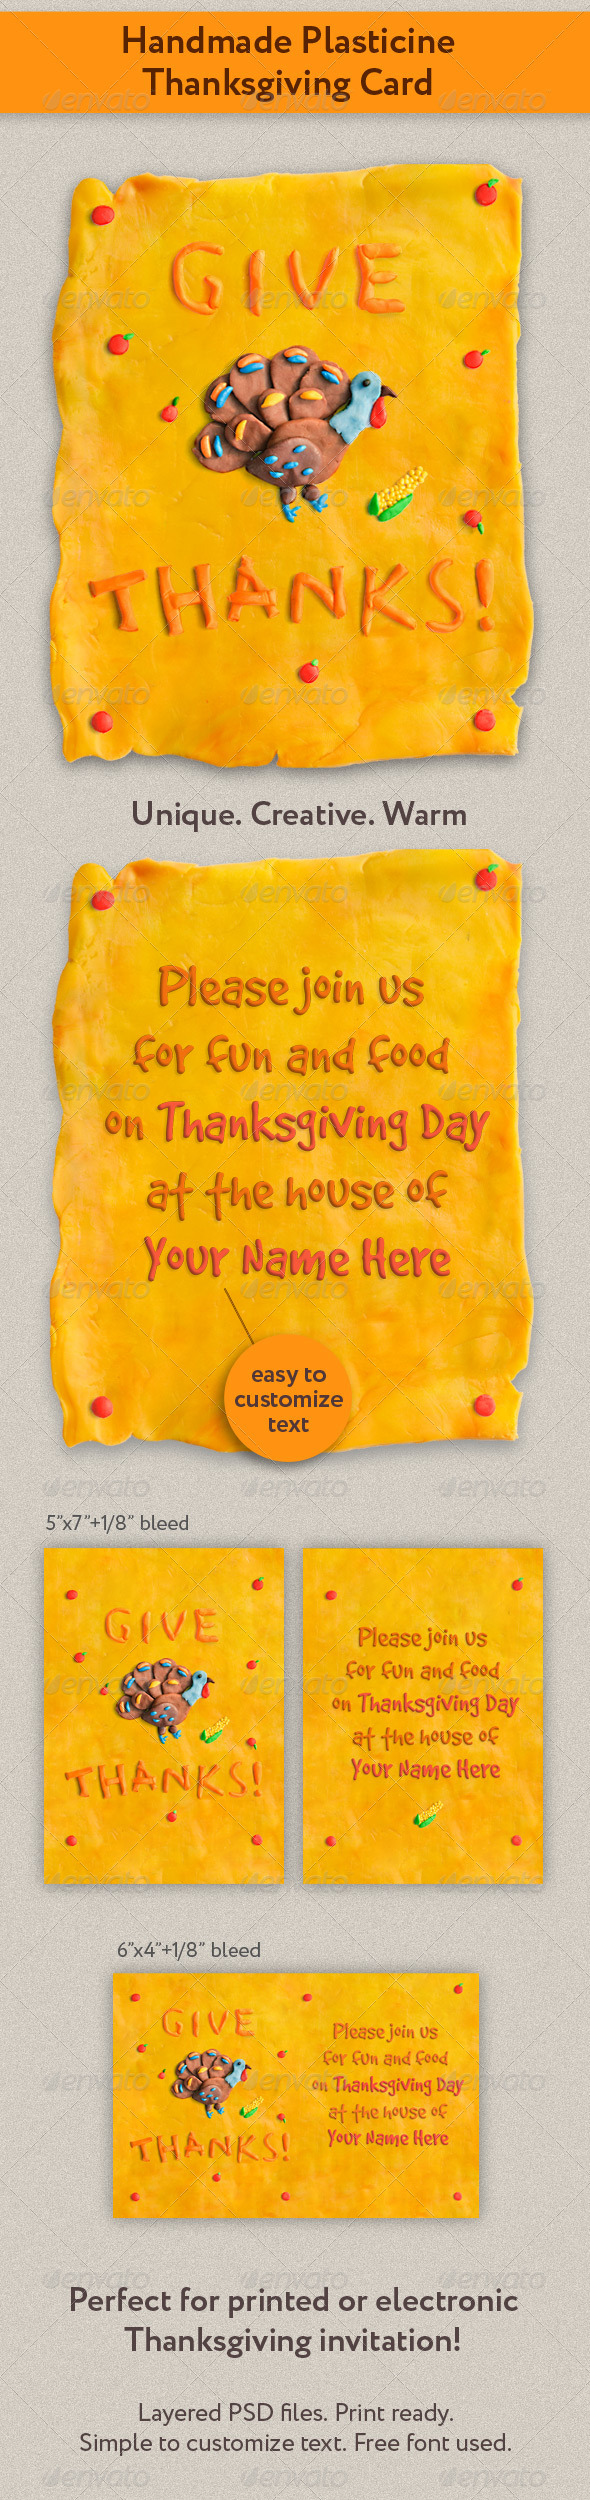 Handmade Plasticine Thanksgiving Card - Holiday Greeting Cards